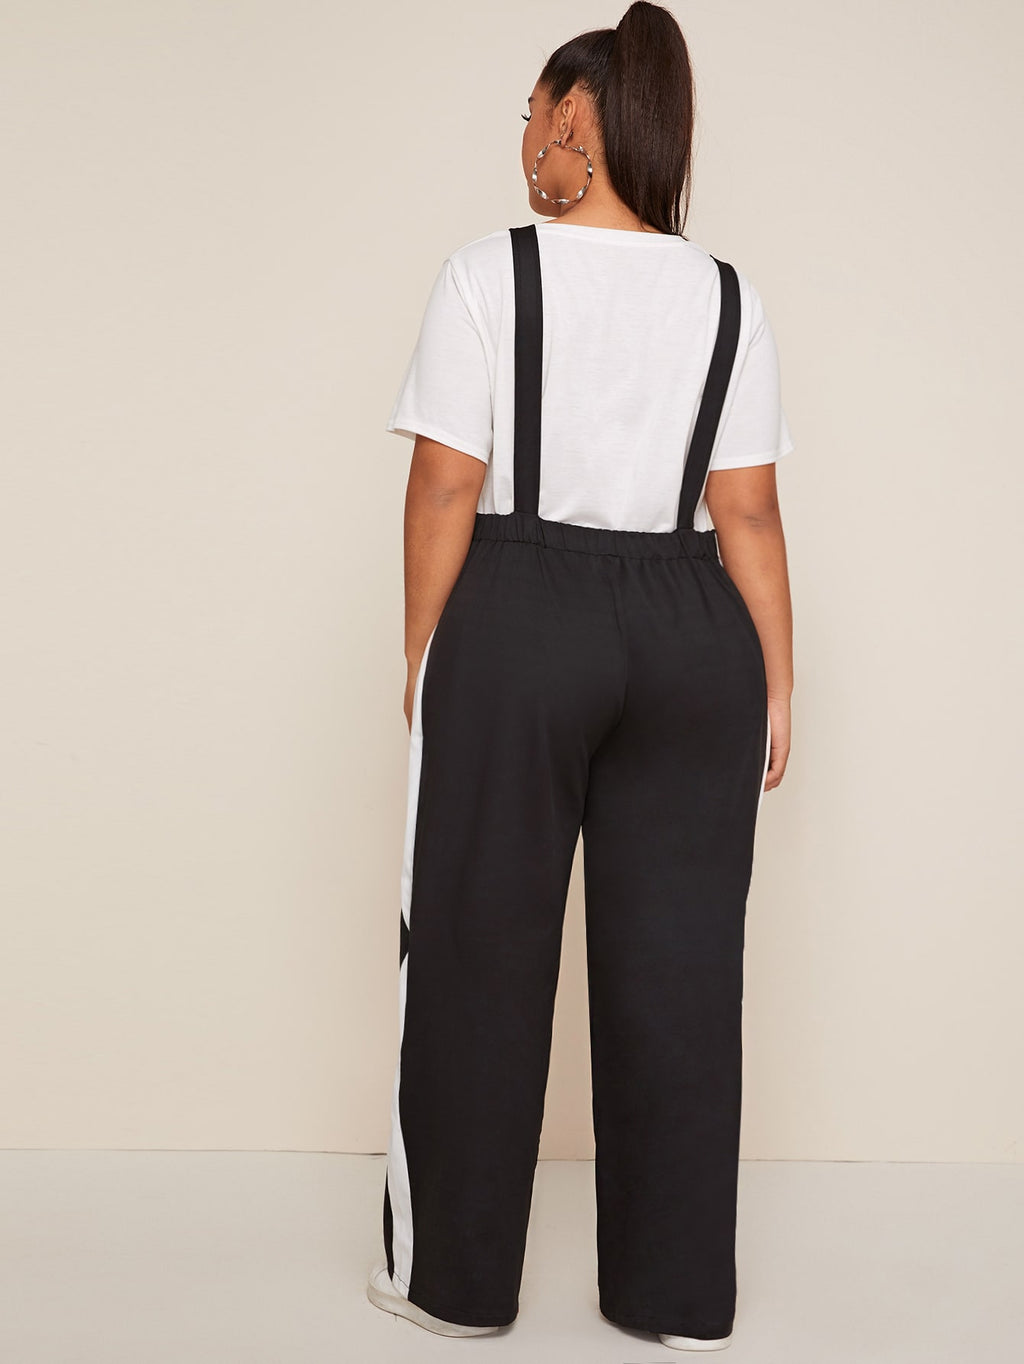 Plus Size Colorblock Button Overall Jumpsuit